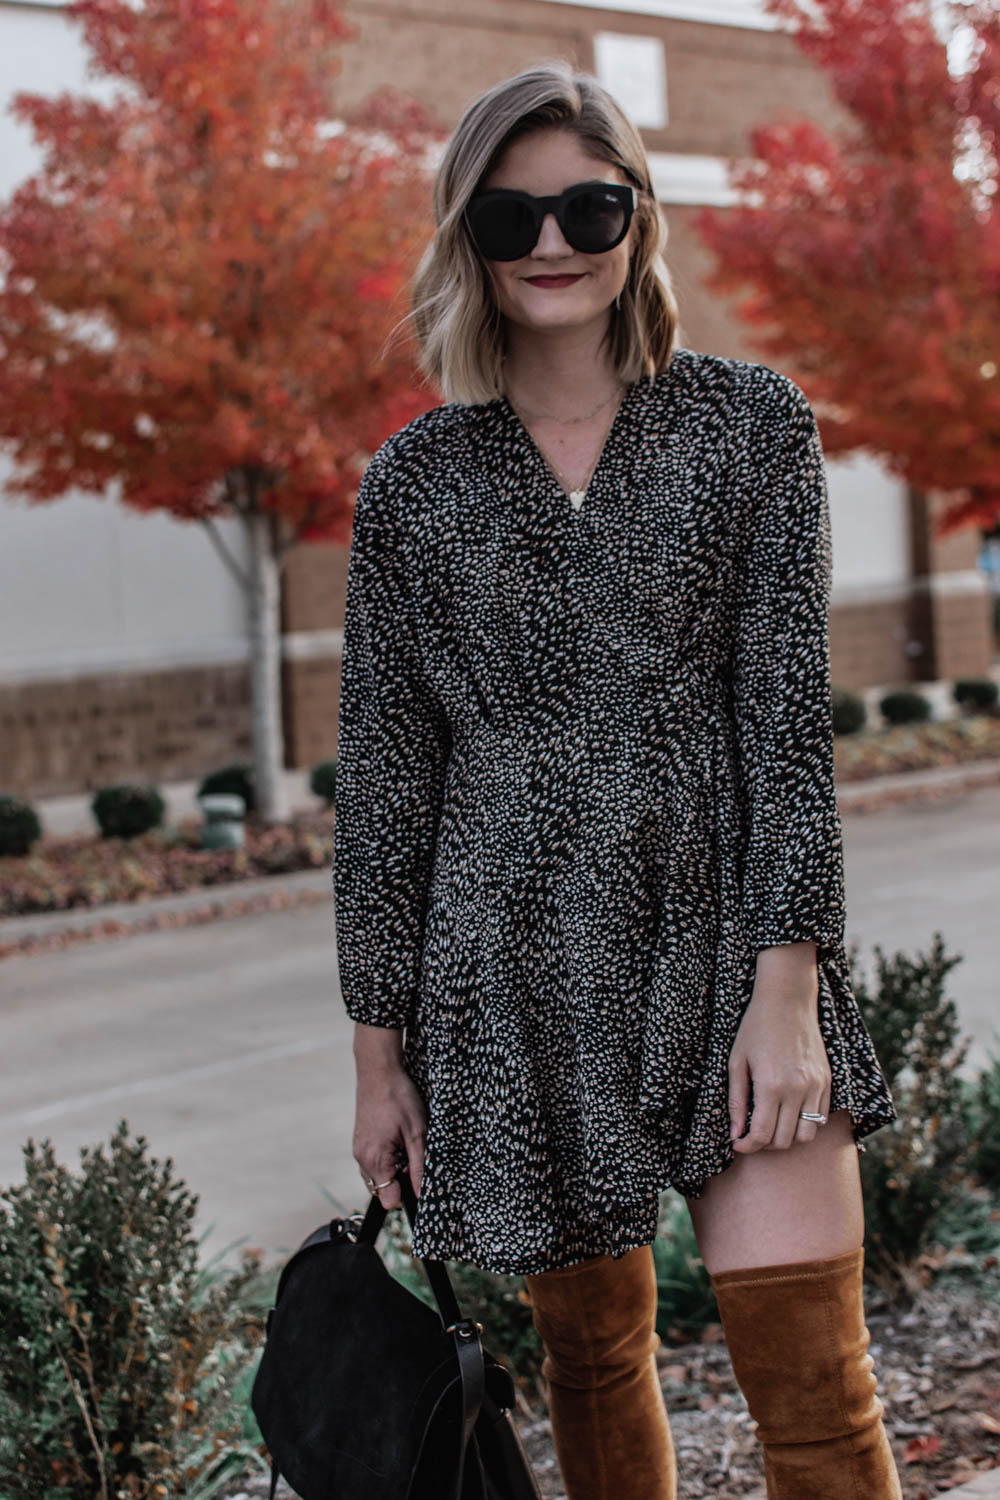 10 Pinterest-Worthy Thanksgiving Outfit Ideas